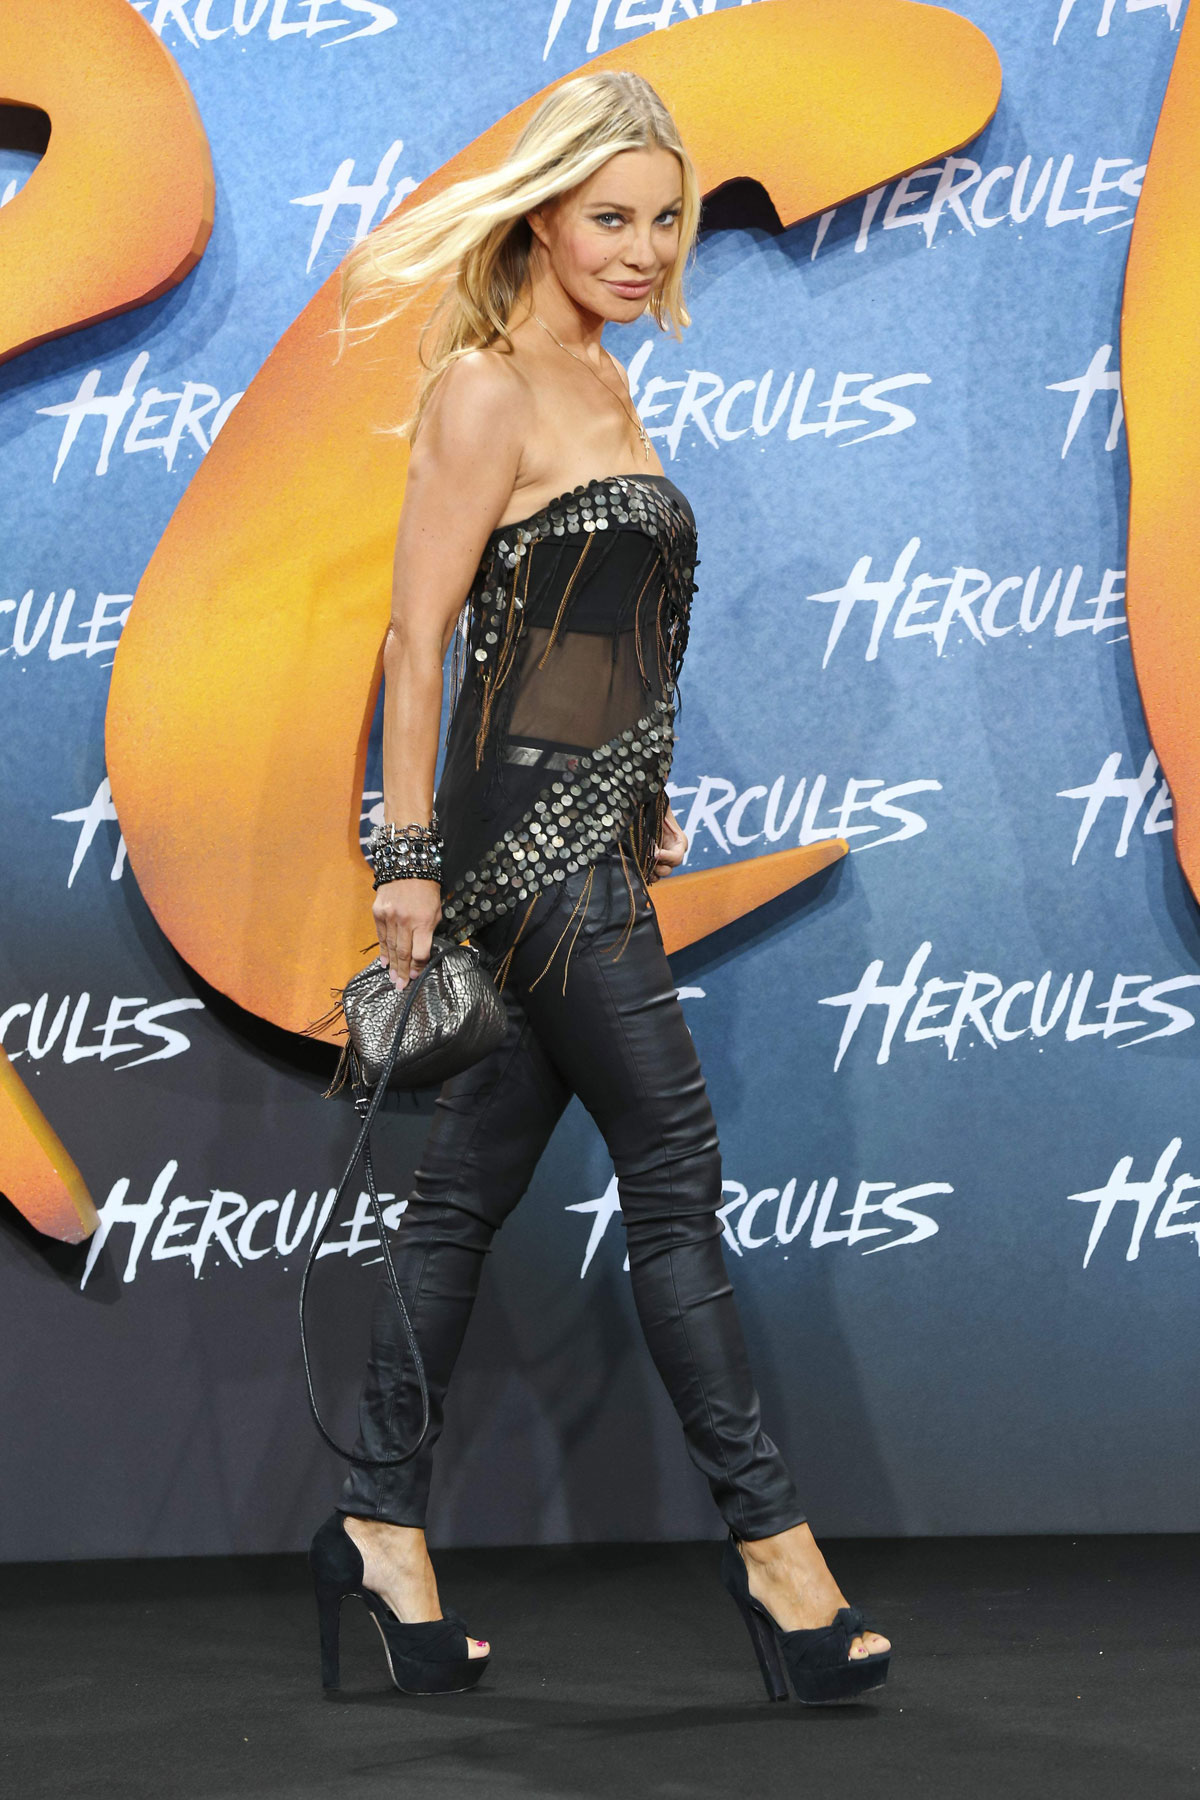 Xenia Seeberg at the European premiere of Hercules